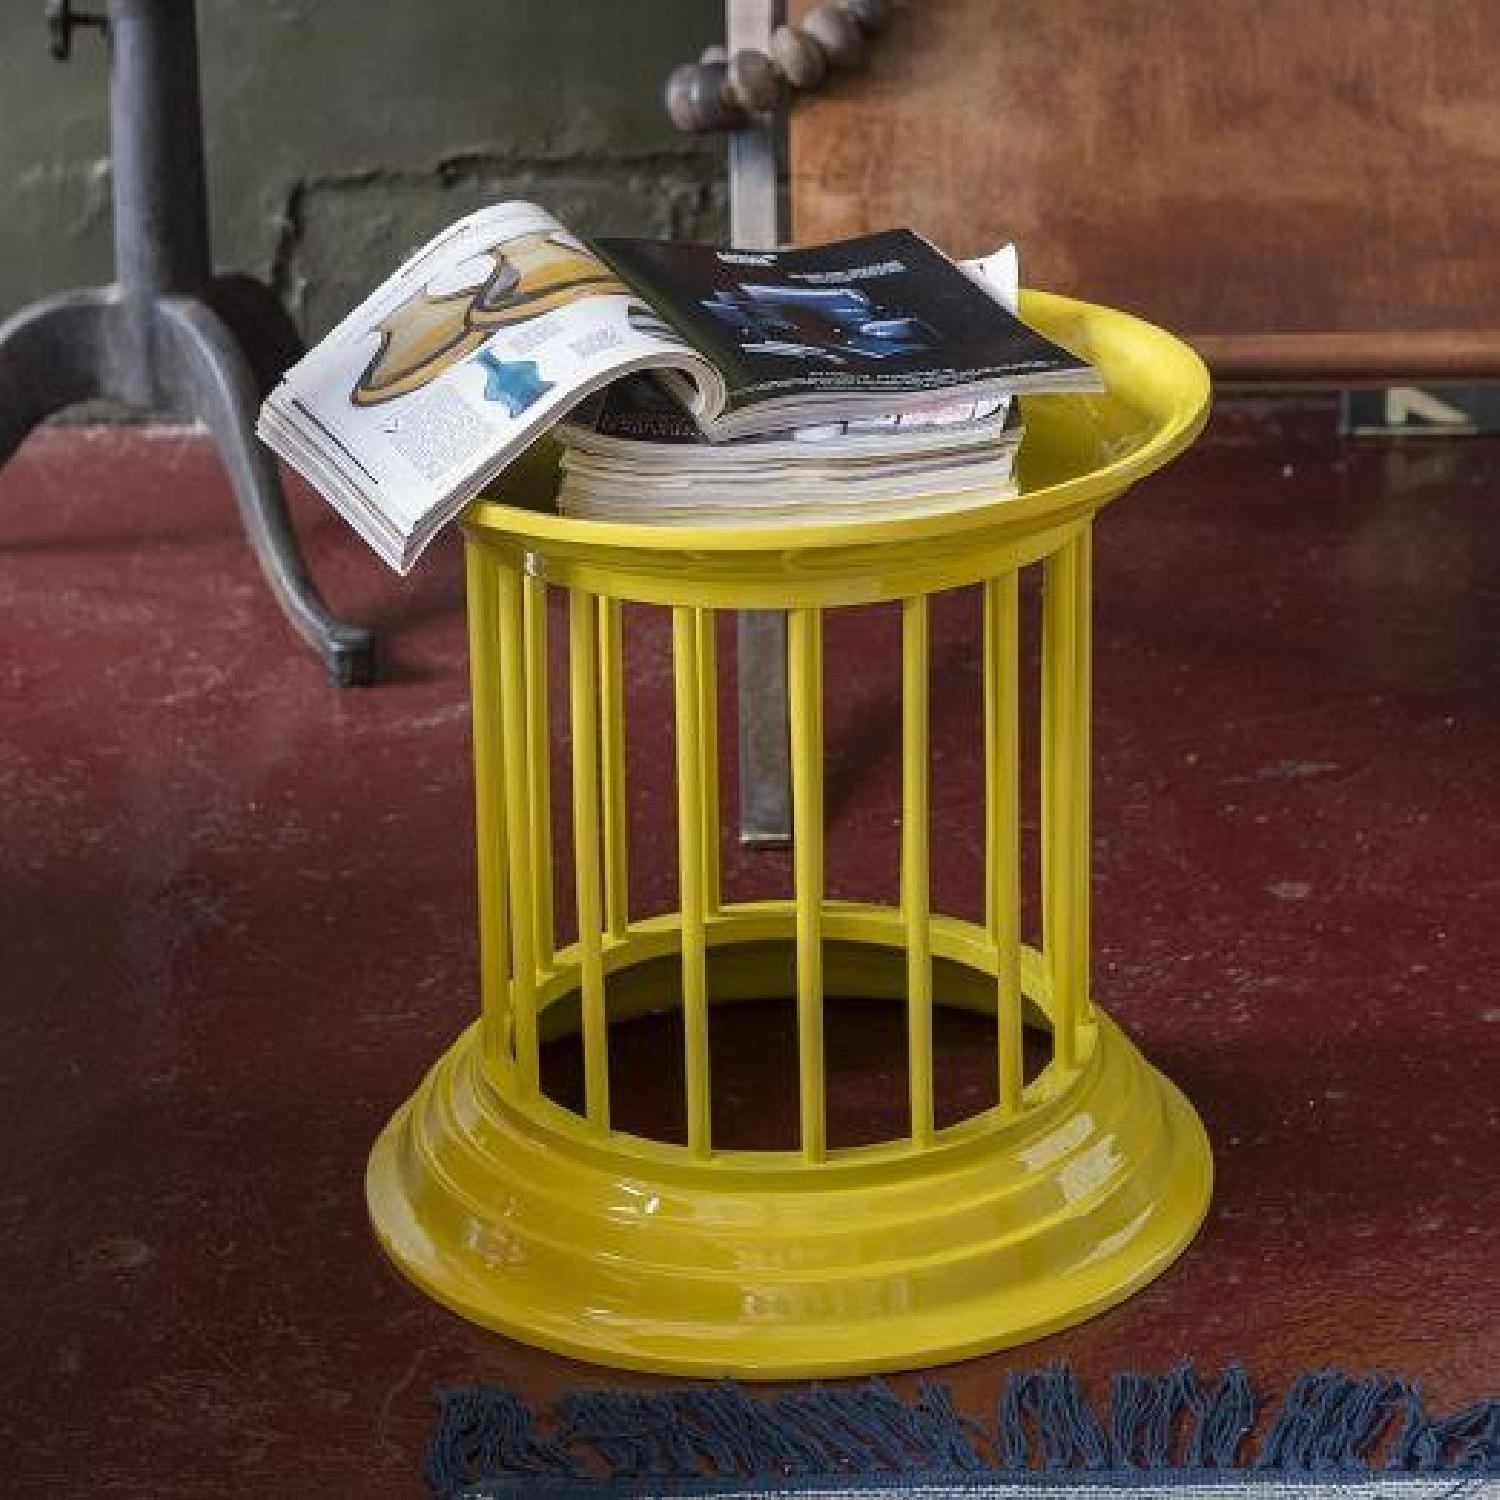 West Elm Gates Gates Lacquer Side Tables in Lemon Yellow - image-2